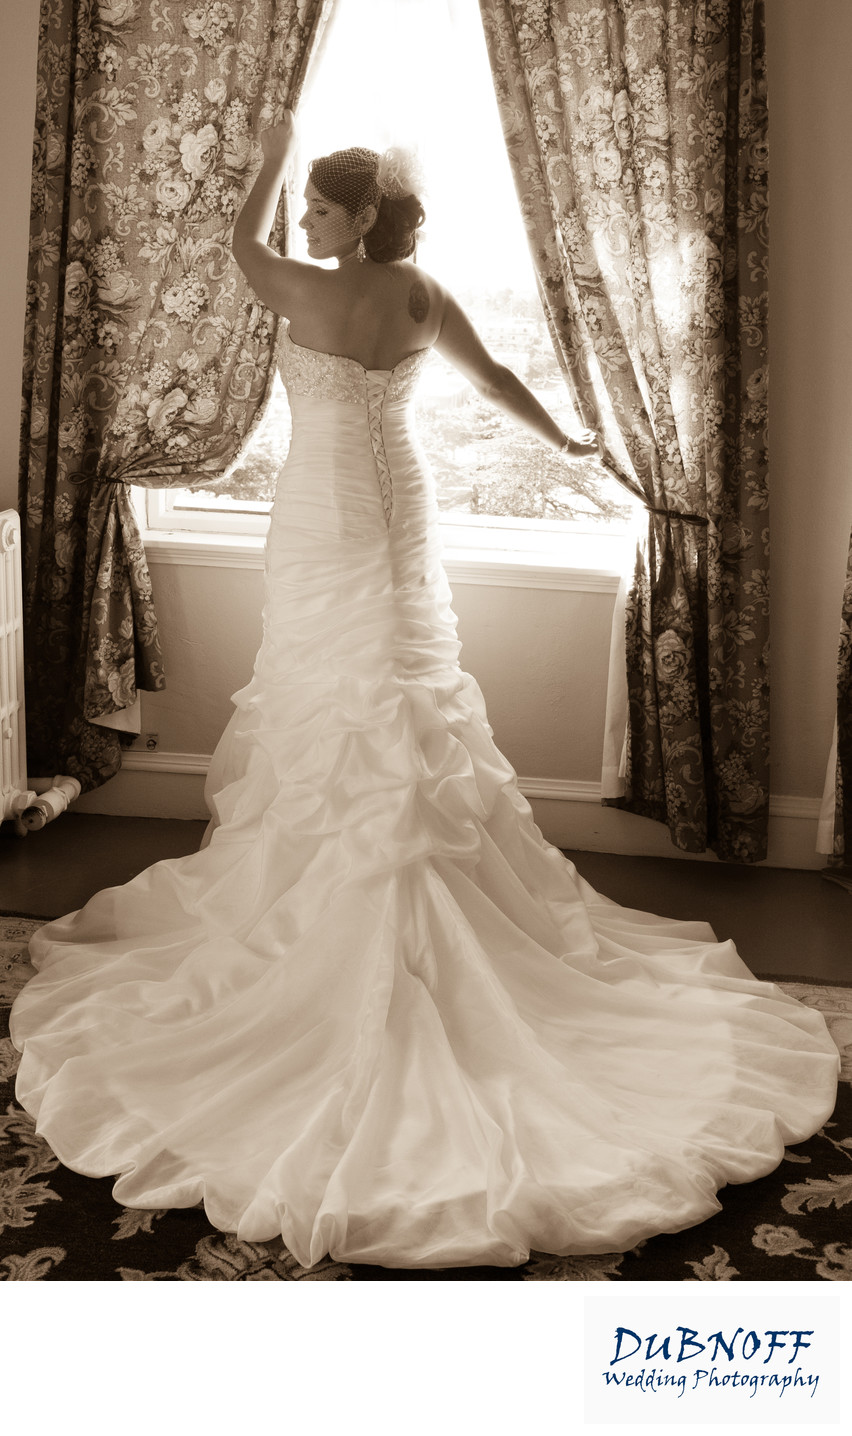 Berkeley City Club Wedding Photography - Back of Dress in the Window